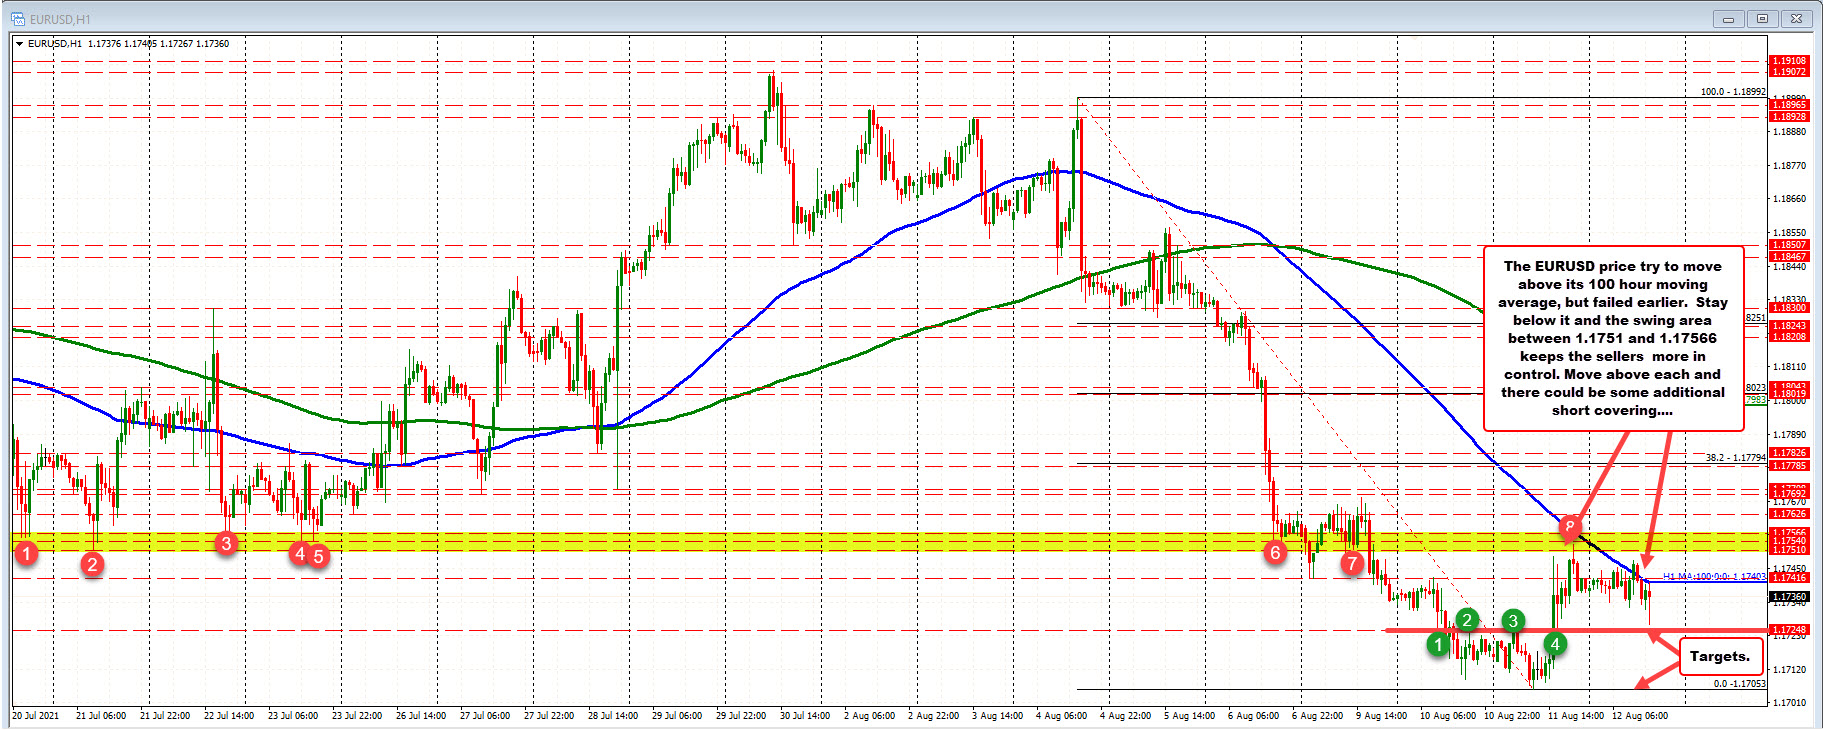 The range is a small 21 pips so far